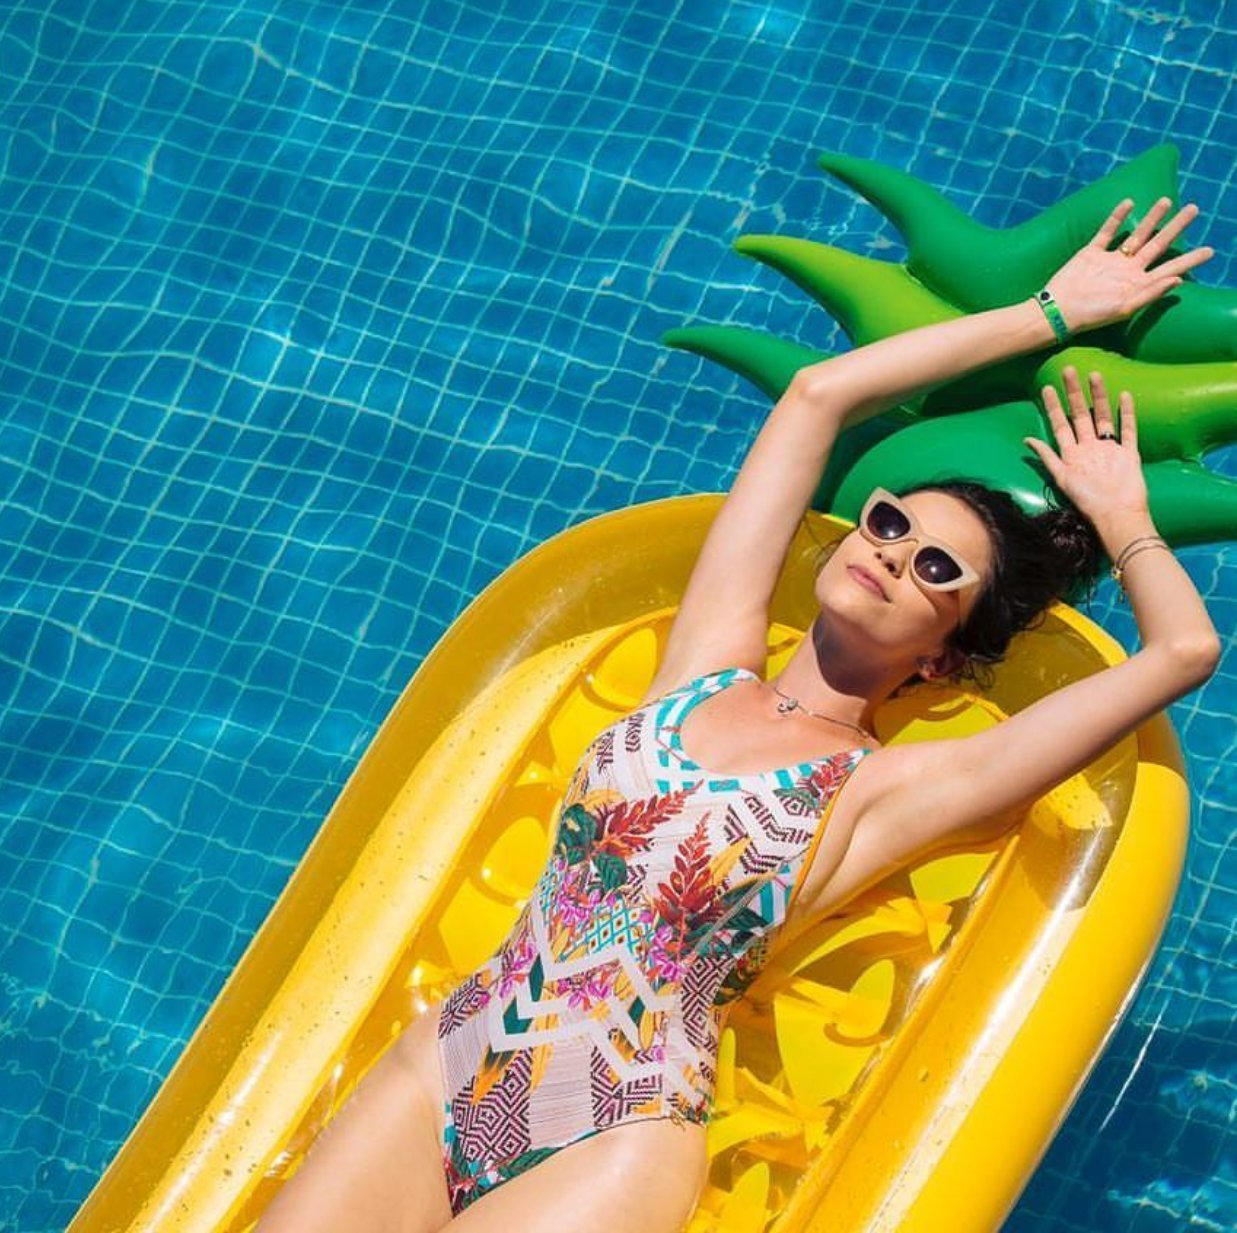 Buy CLASSIC Giant Inflatable Pineapple Swimming Pool Float ...